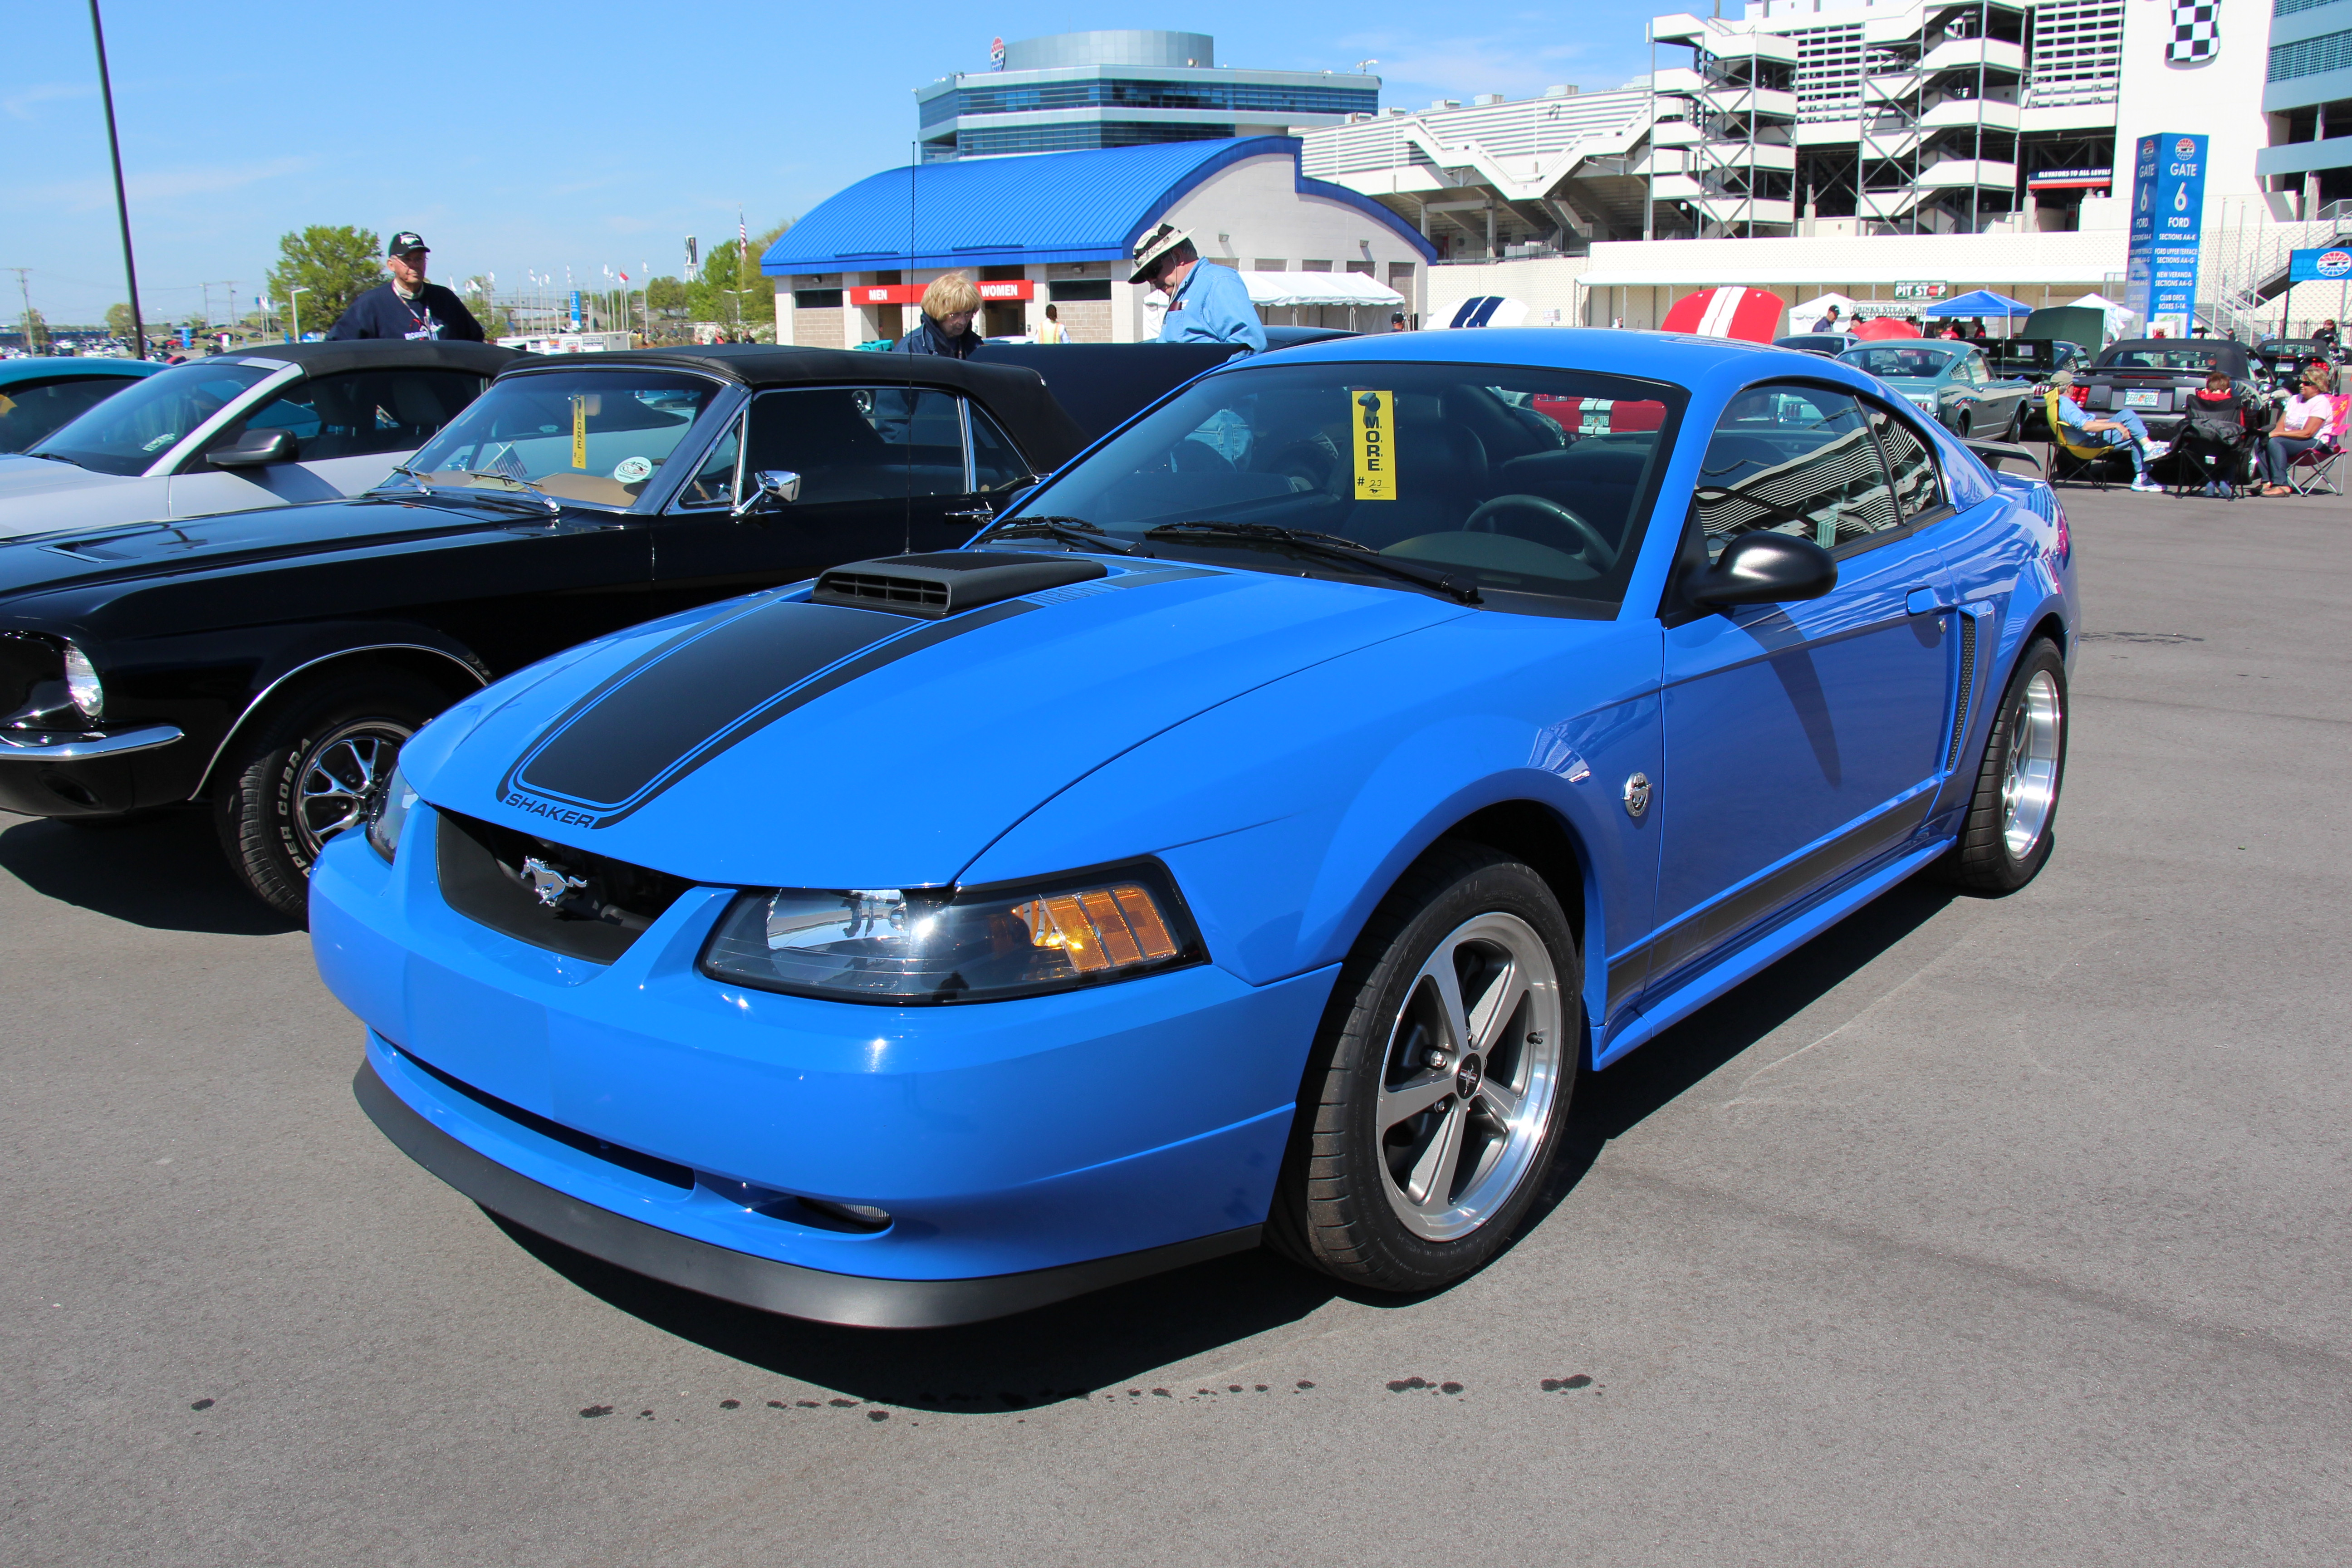 File:2003 Ford Mustang Mach 1 Coupe (14442259843).jpg - Wikimedia Commons